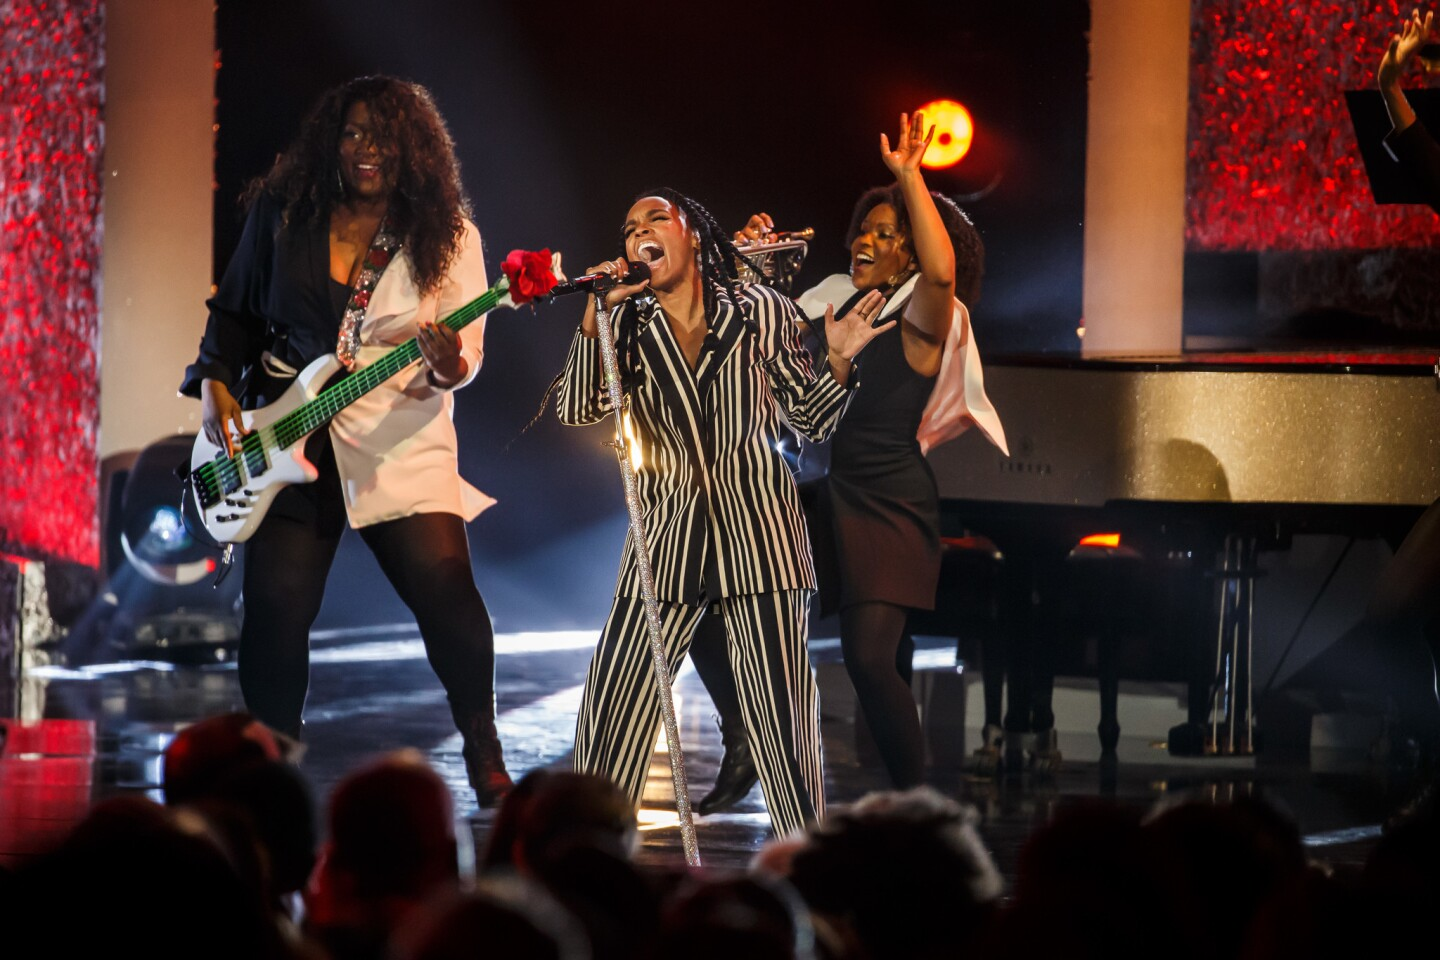 """Janelle Monae performs for Aretha Franklin's tribute concert, """"Aretha! A Grammy Celebration for the Queen of Soul,"""" at the Shrine Auditorium in Los Angeles."""